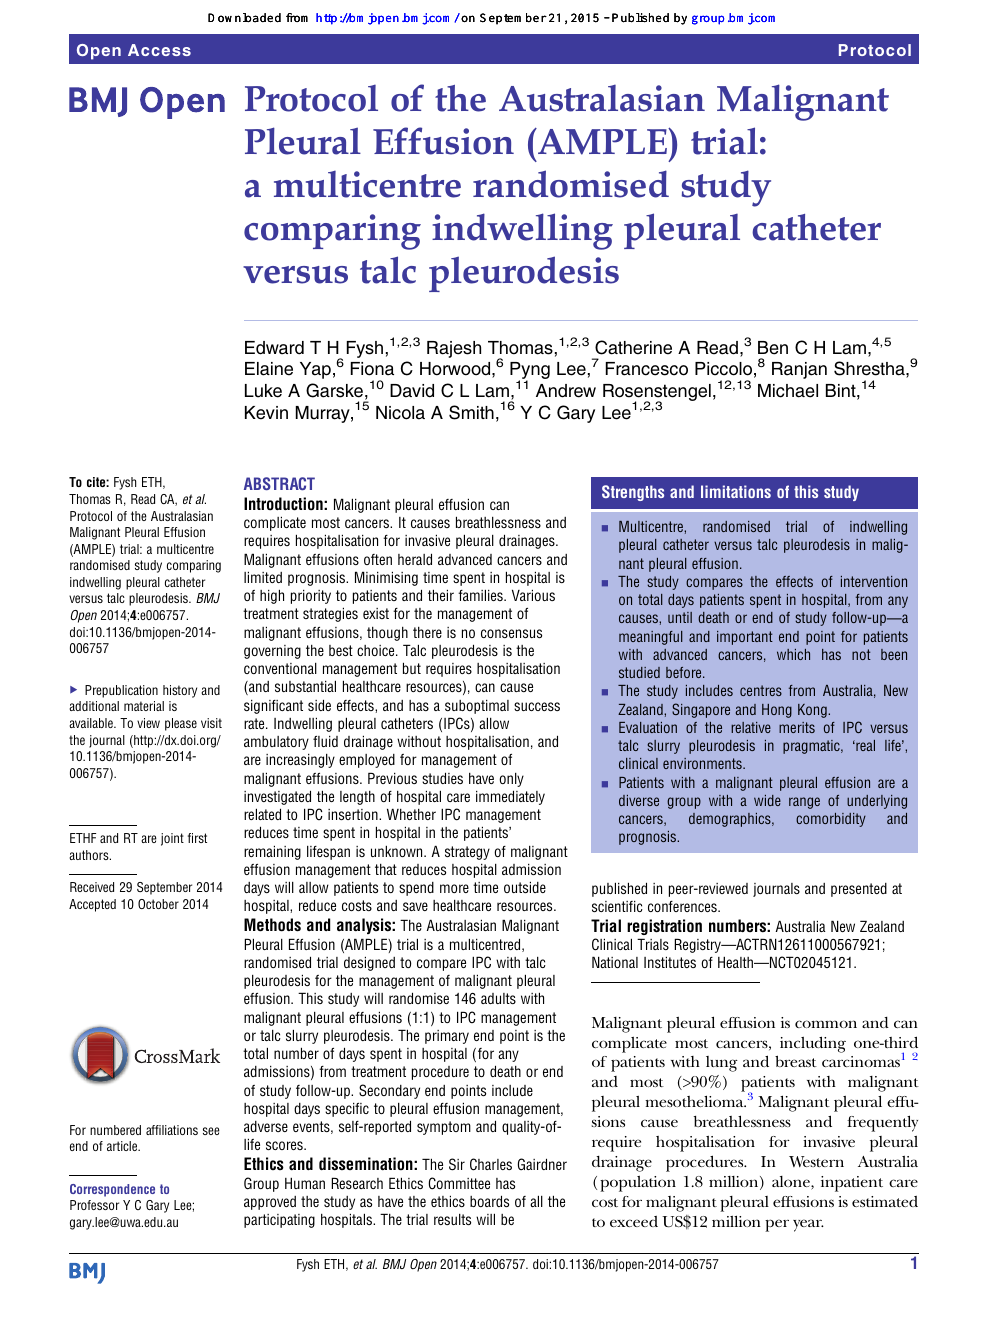 Protocol Of The Australasian Malignant Pleural Effusion Ample Trial A Multicentre Randomised Study Comparing Indwelling Pleural Catheter Versus Talc Pleurodesis Topic Of Research Paper In Clinical Medicine Download Scholarly Article Pdf